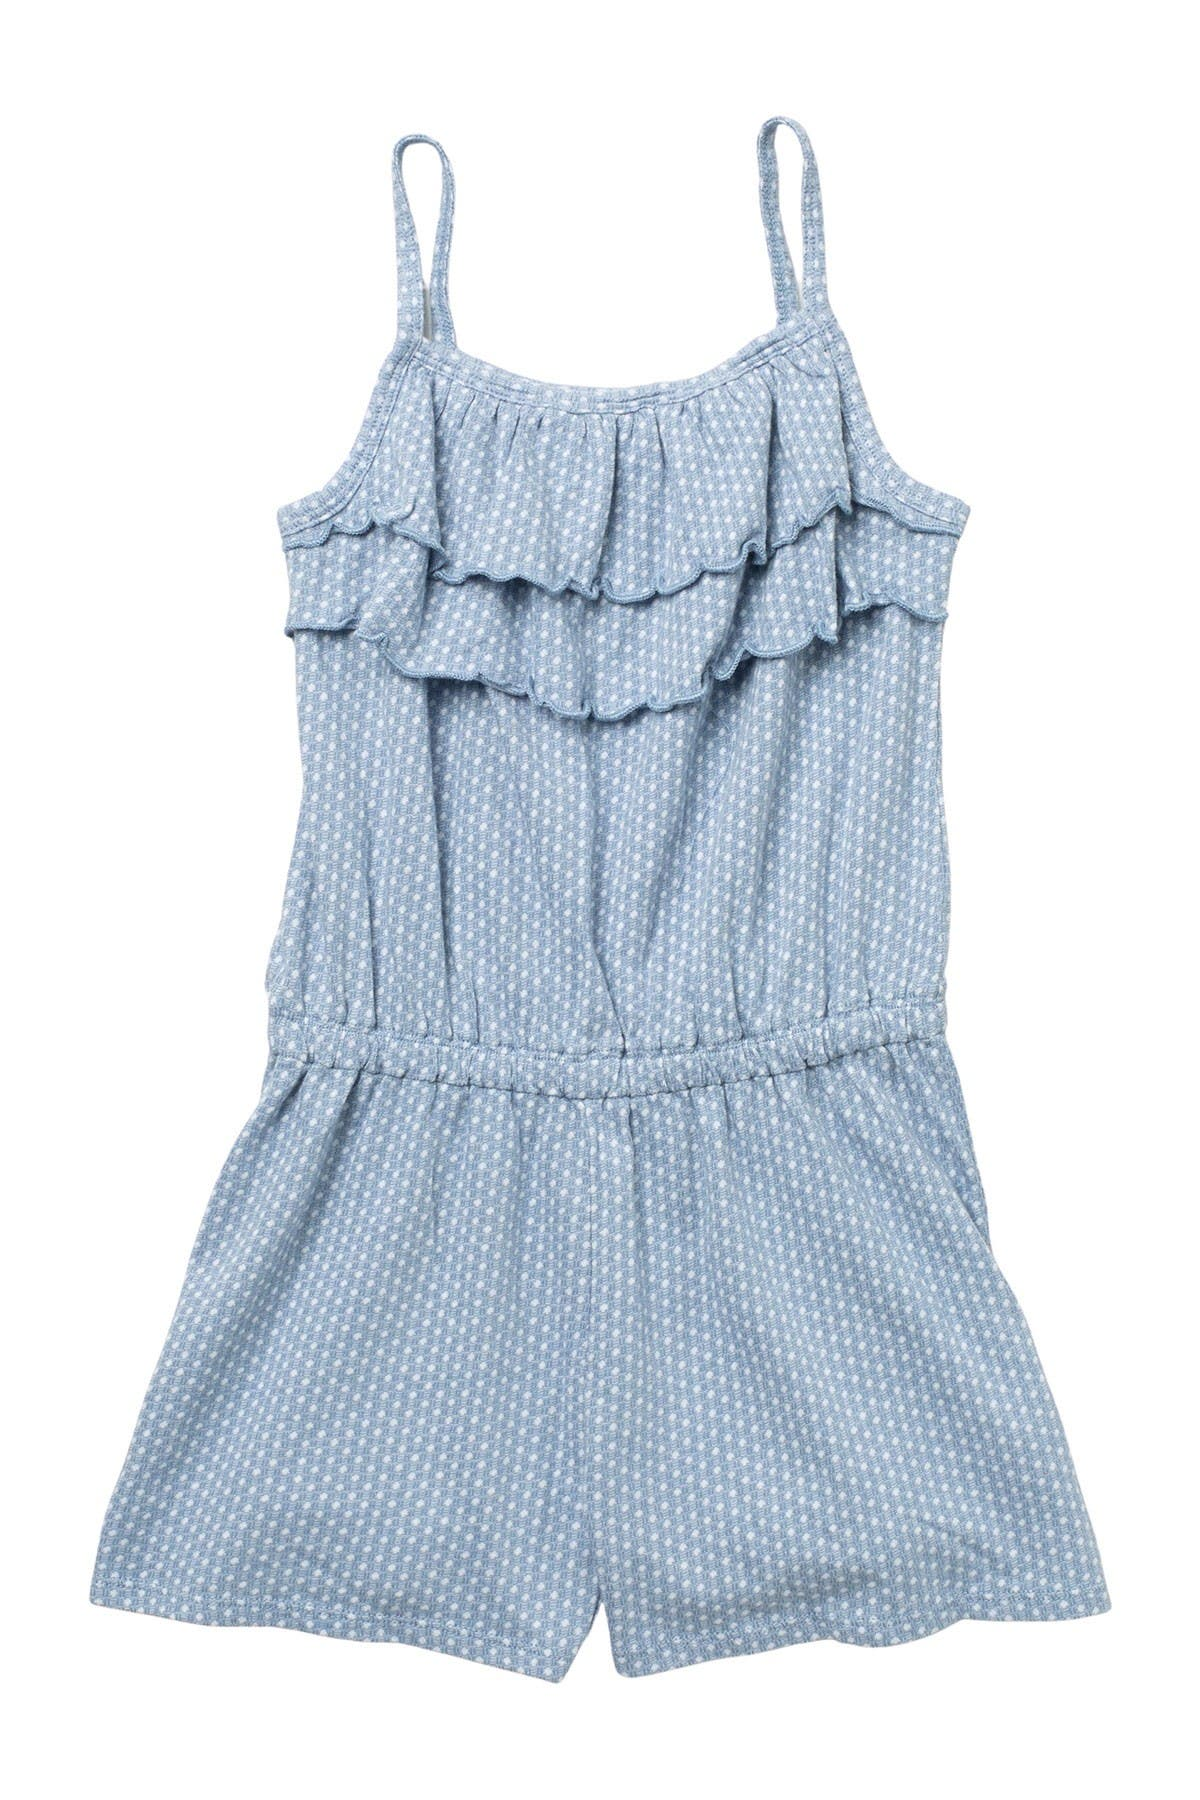 Image of Harper Canyon Tiered Ruffle Romper